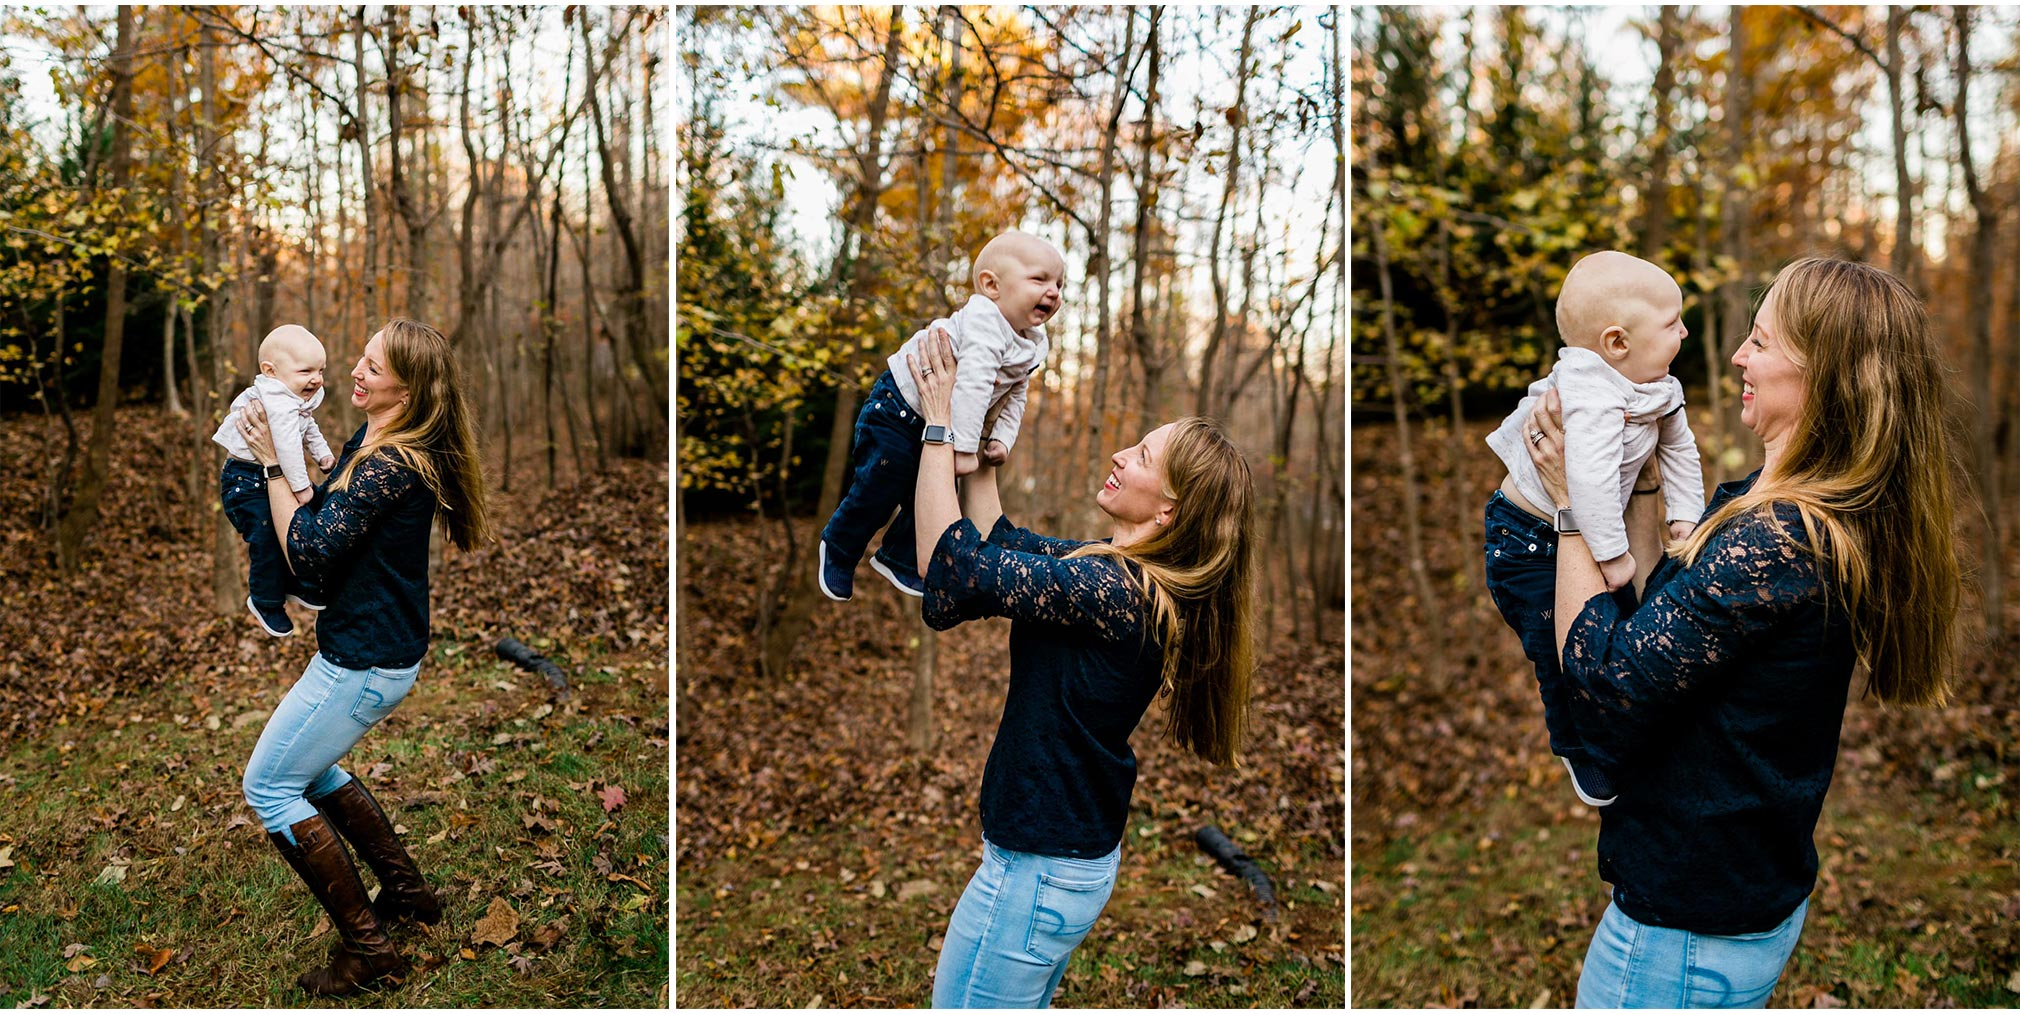 Mom laughing and playing with baby boy | By G. Lin Photography | Durham Family Photography